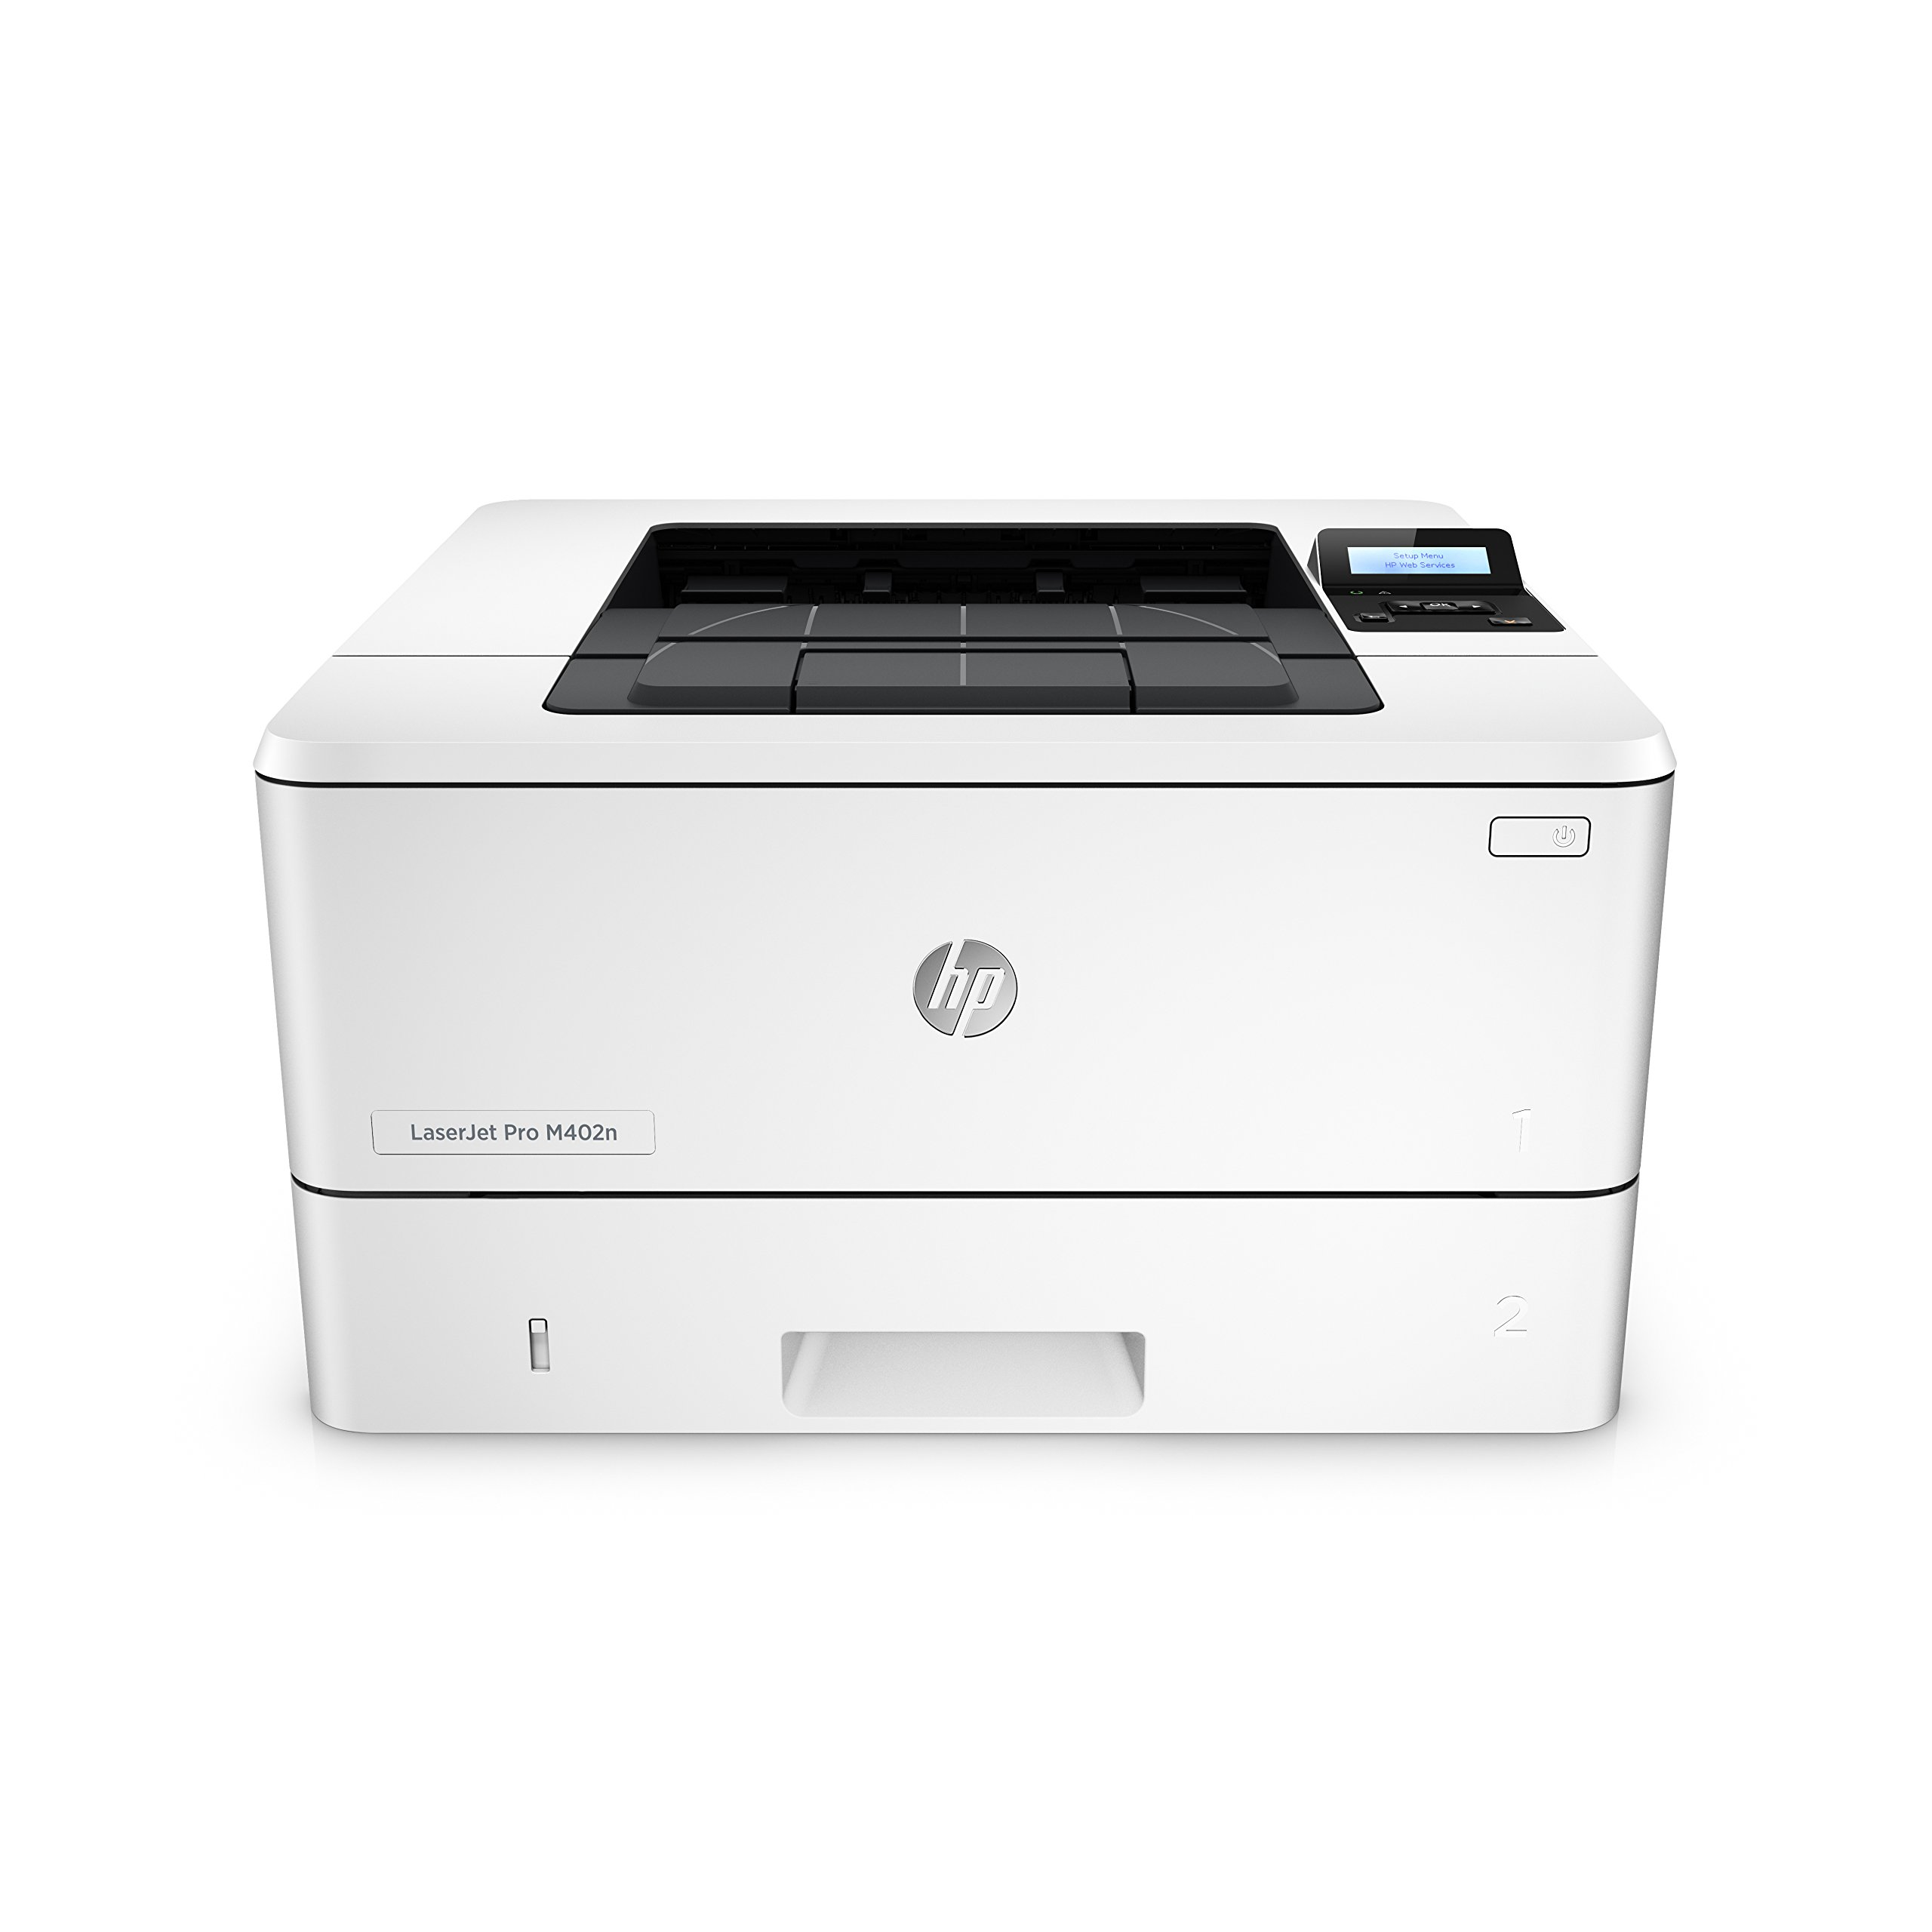 HP LaserJet Pro M402n Monochrome Printer, (C5F93A) by HP